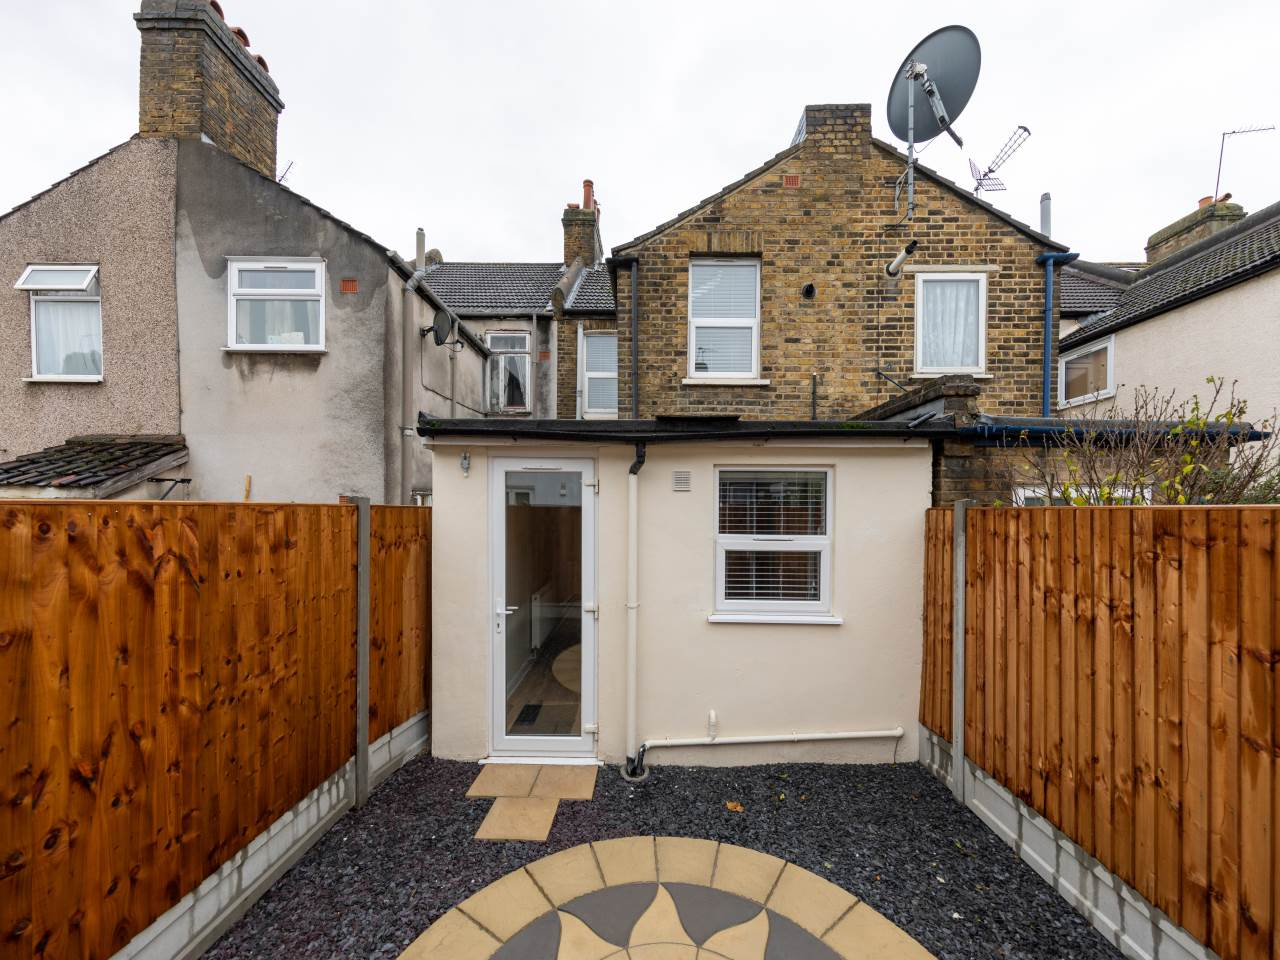 3 bed house for sale in Exning Road , Canning Town   - Property Image 15